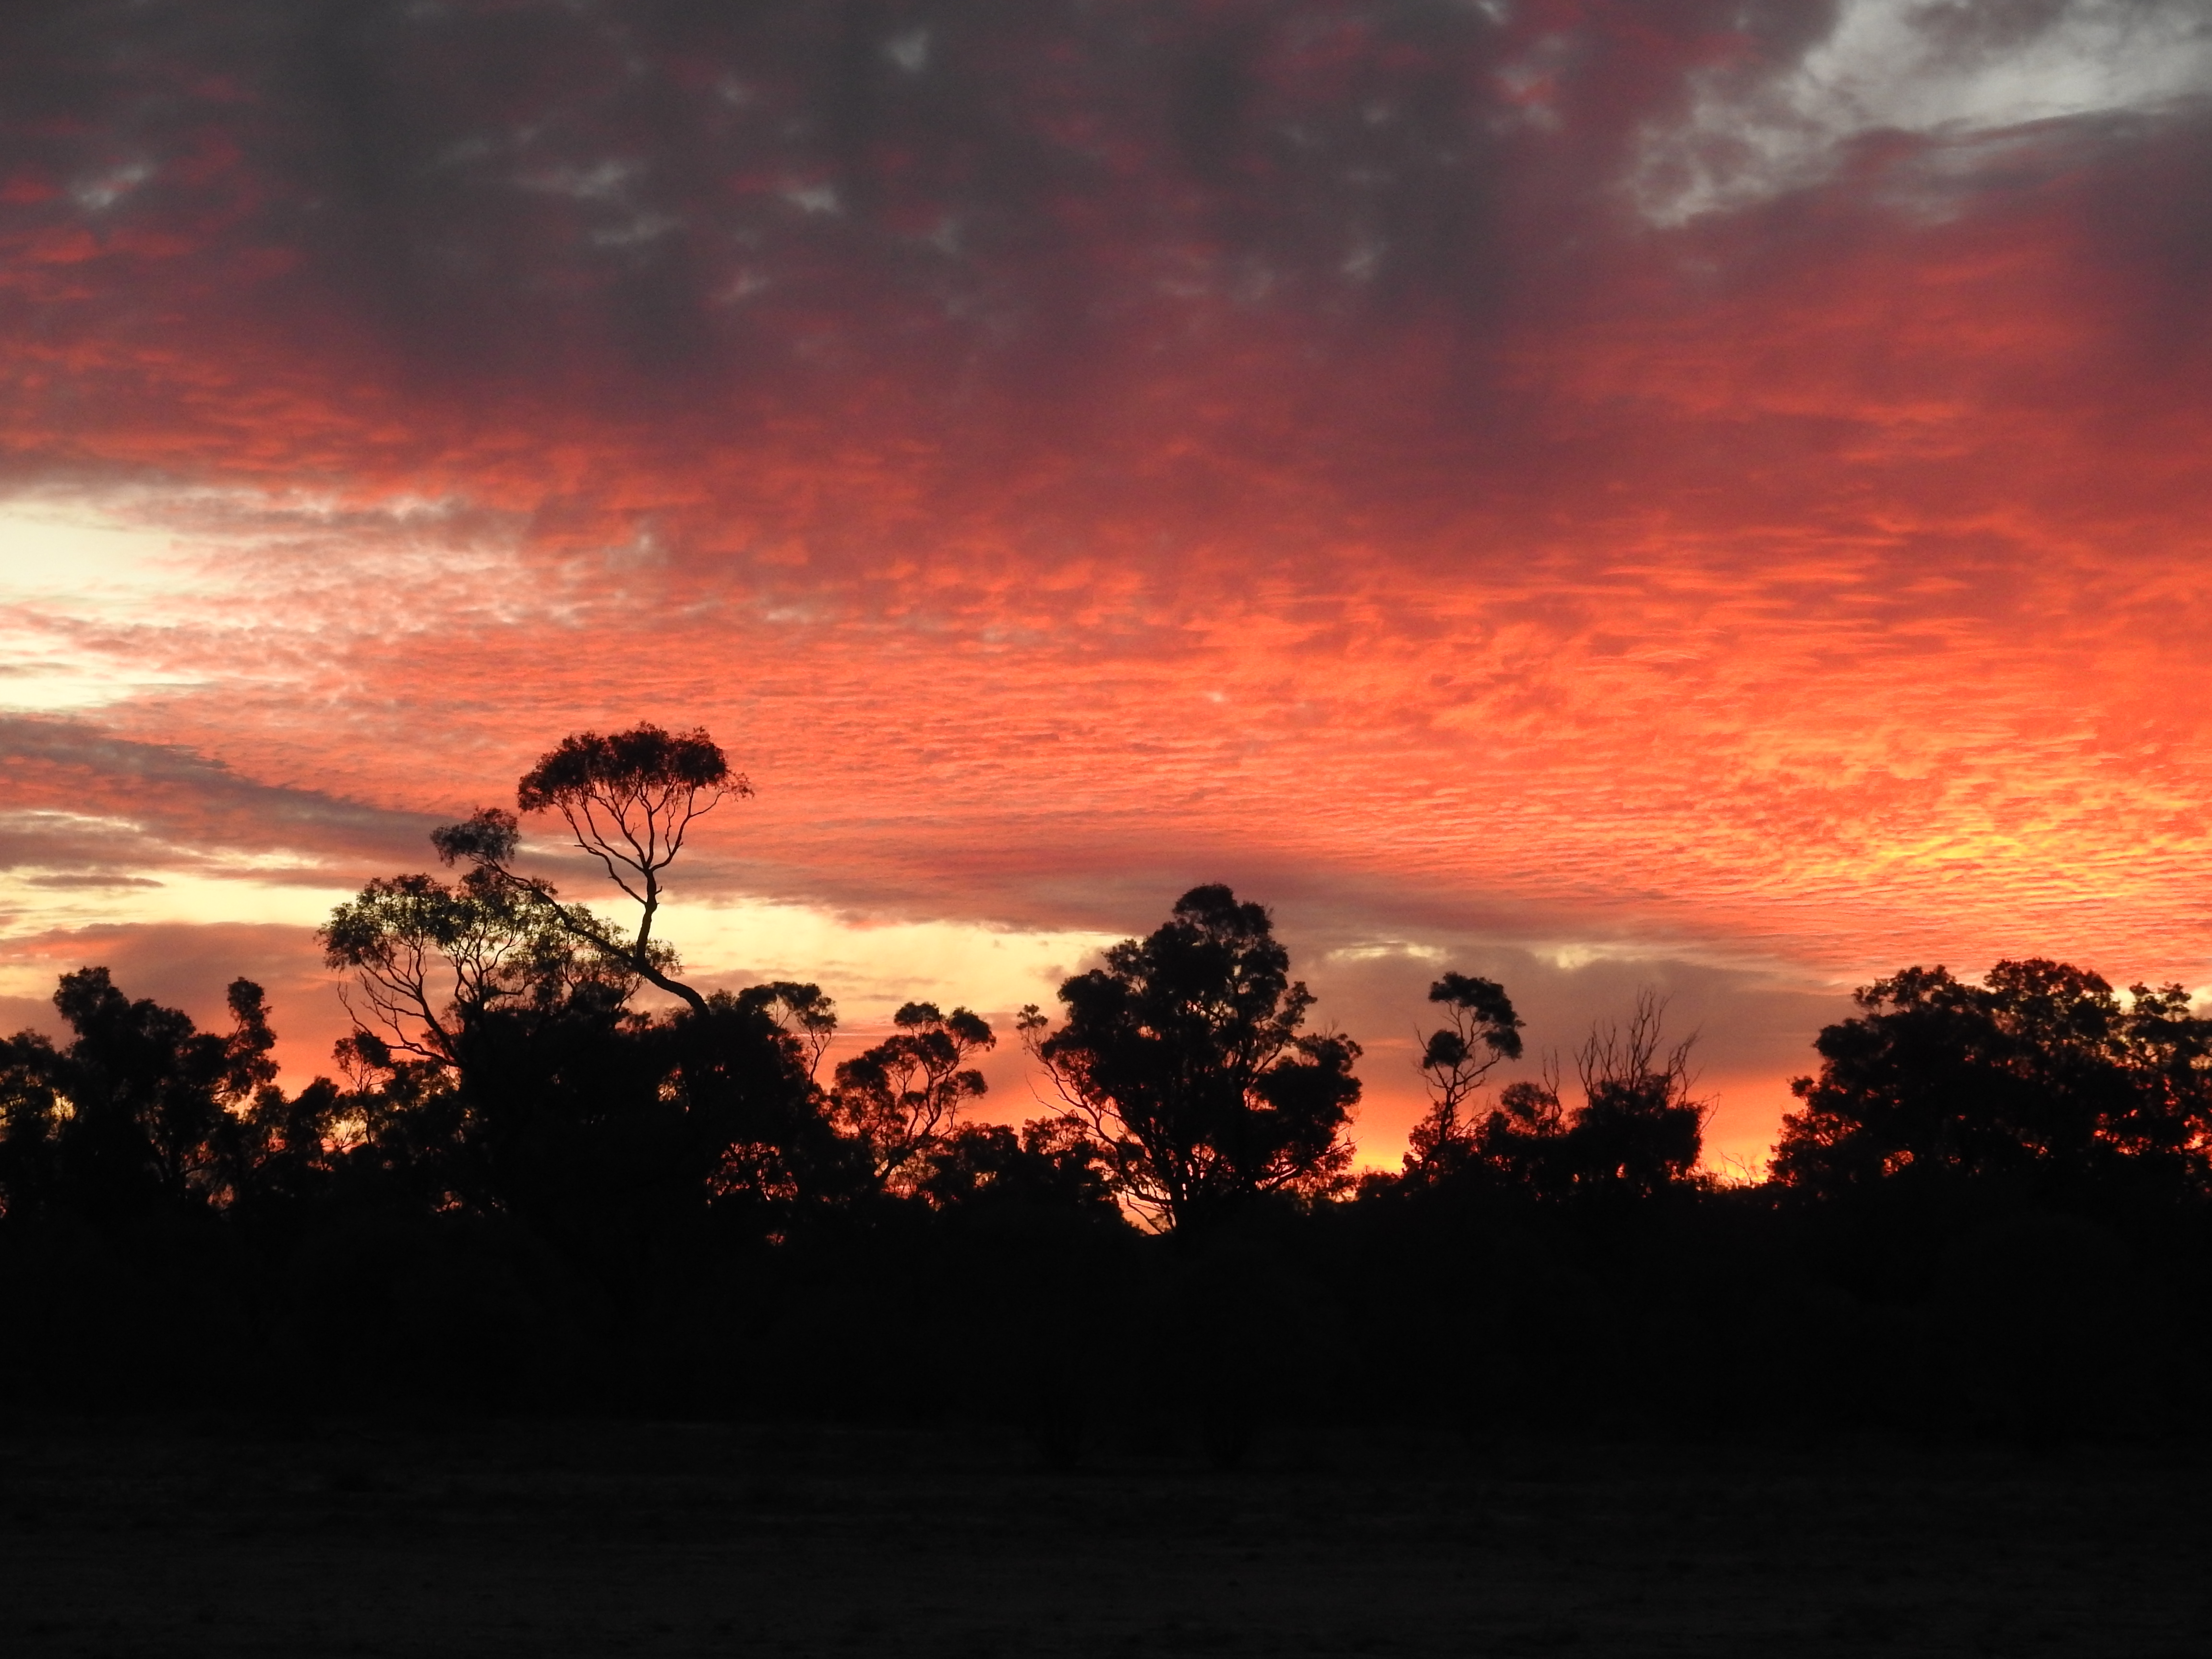 Sunset at Bowra